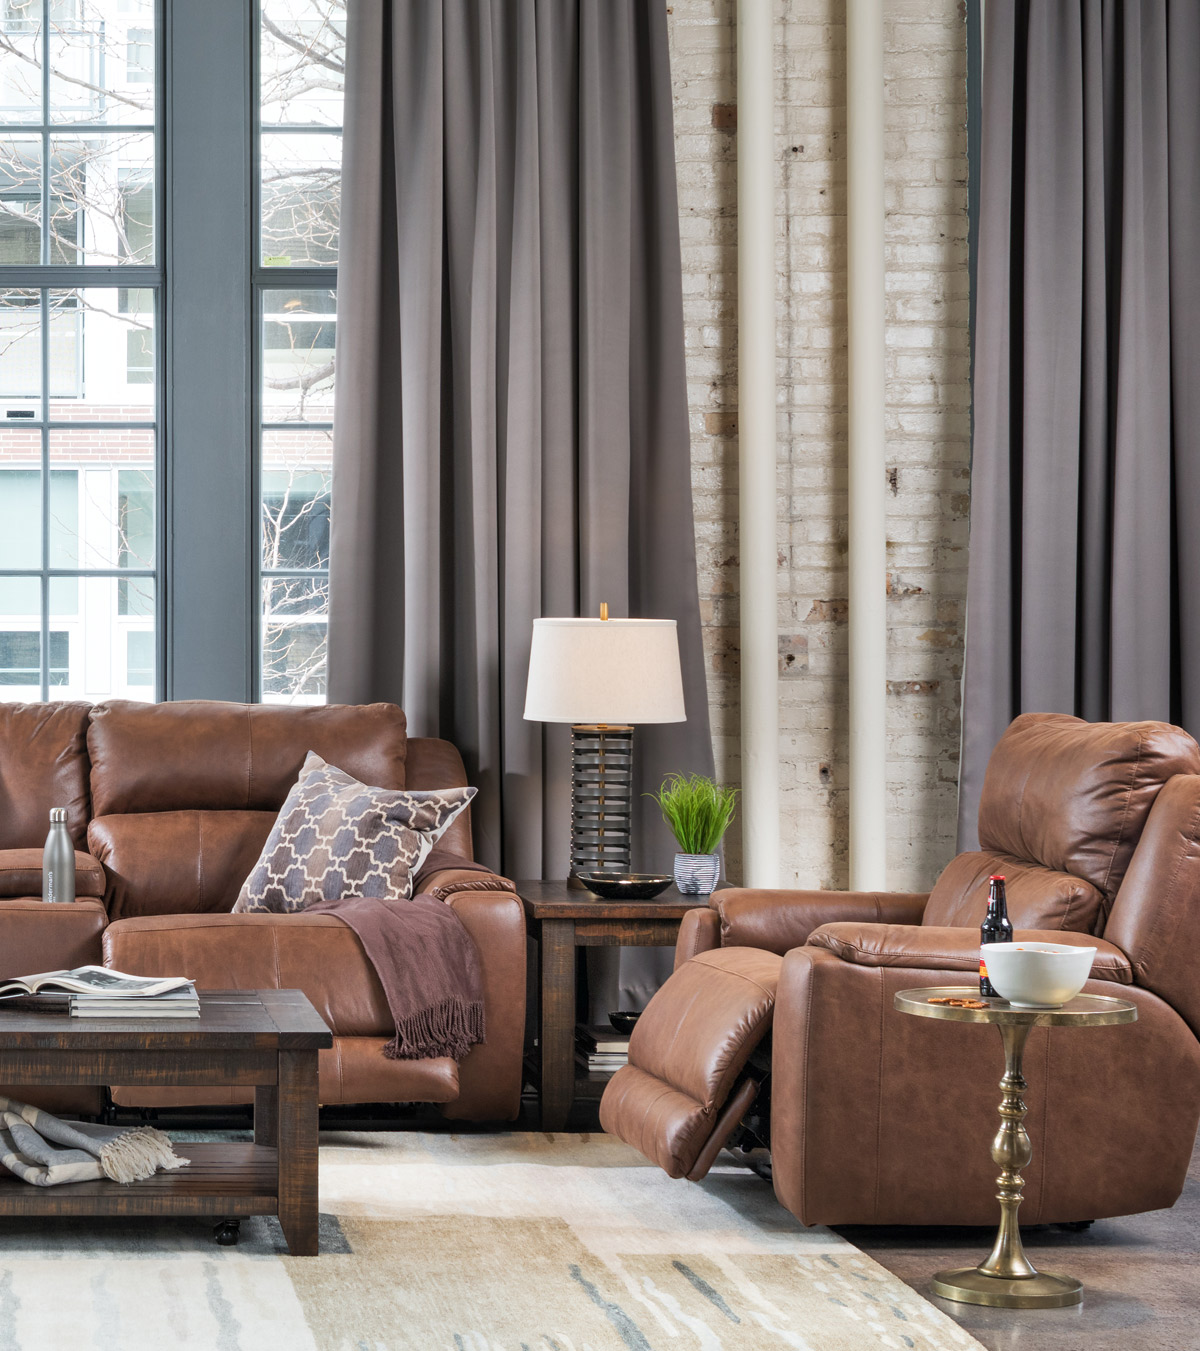 Decorating With Brown And Gray A Pairing That May Surprise You Schneiderman S The Blog Design And Decorating